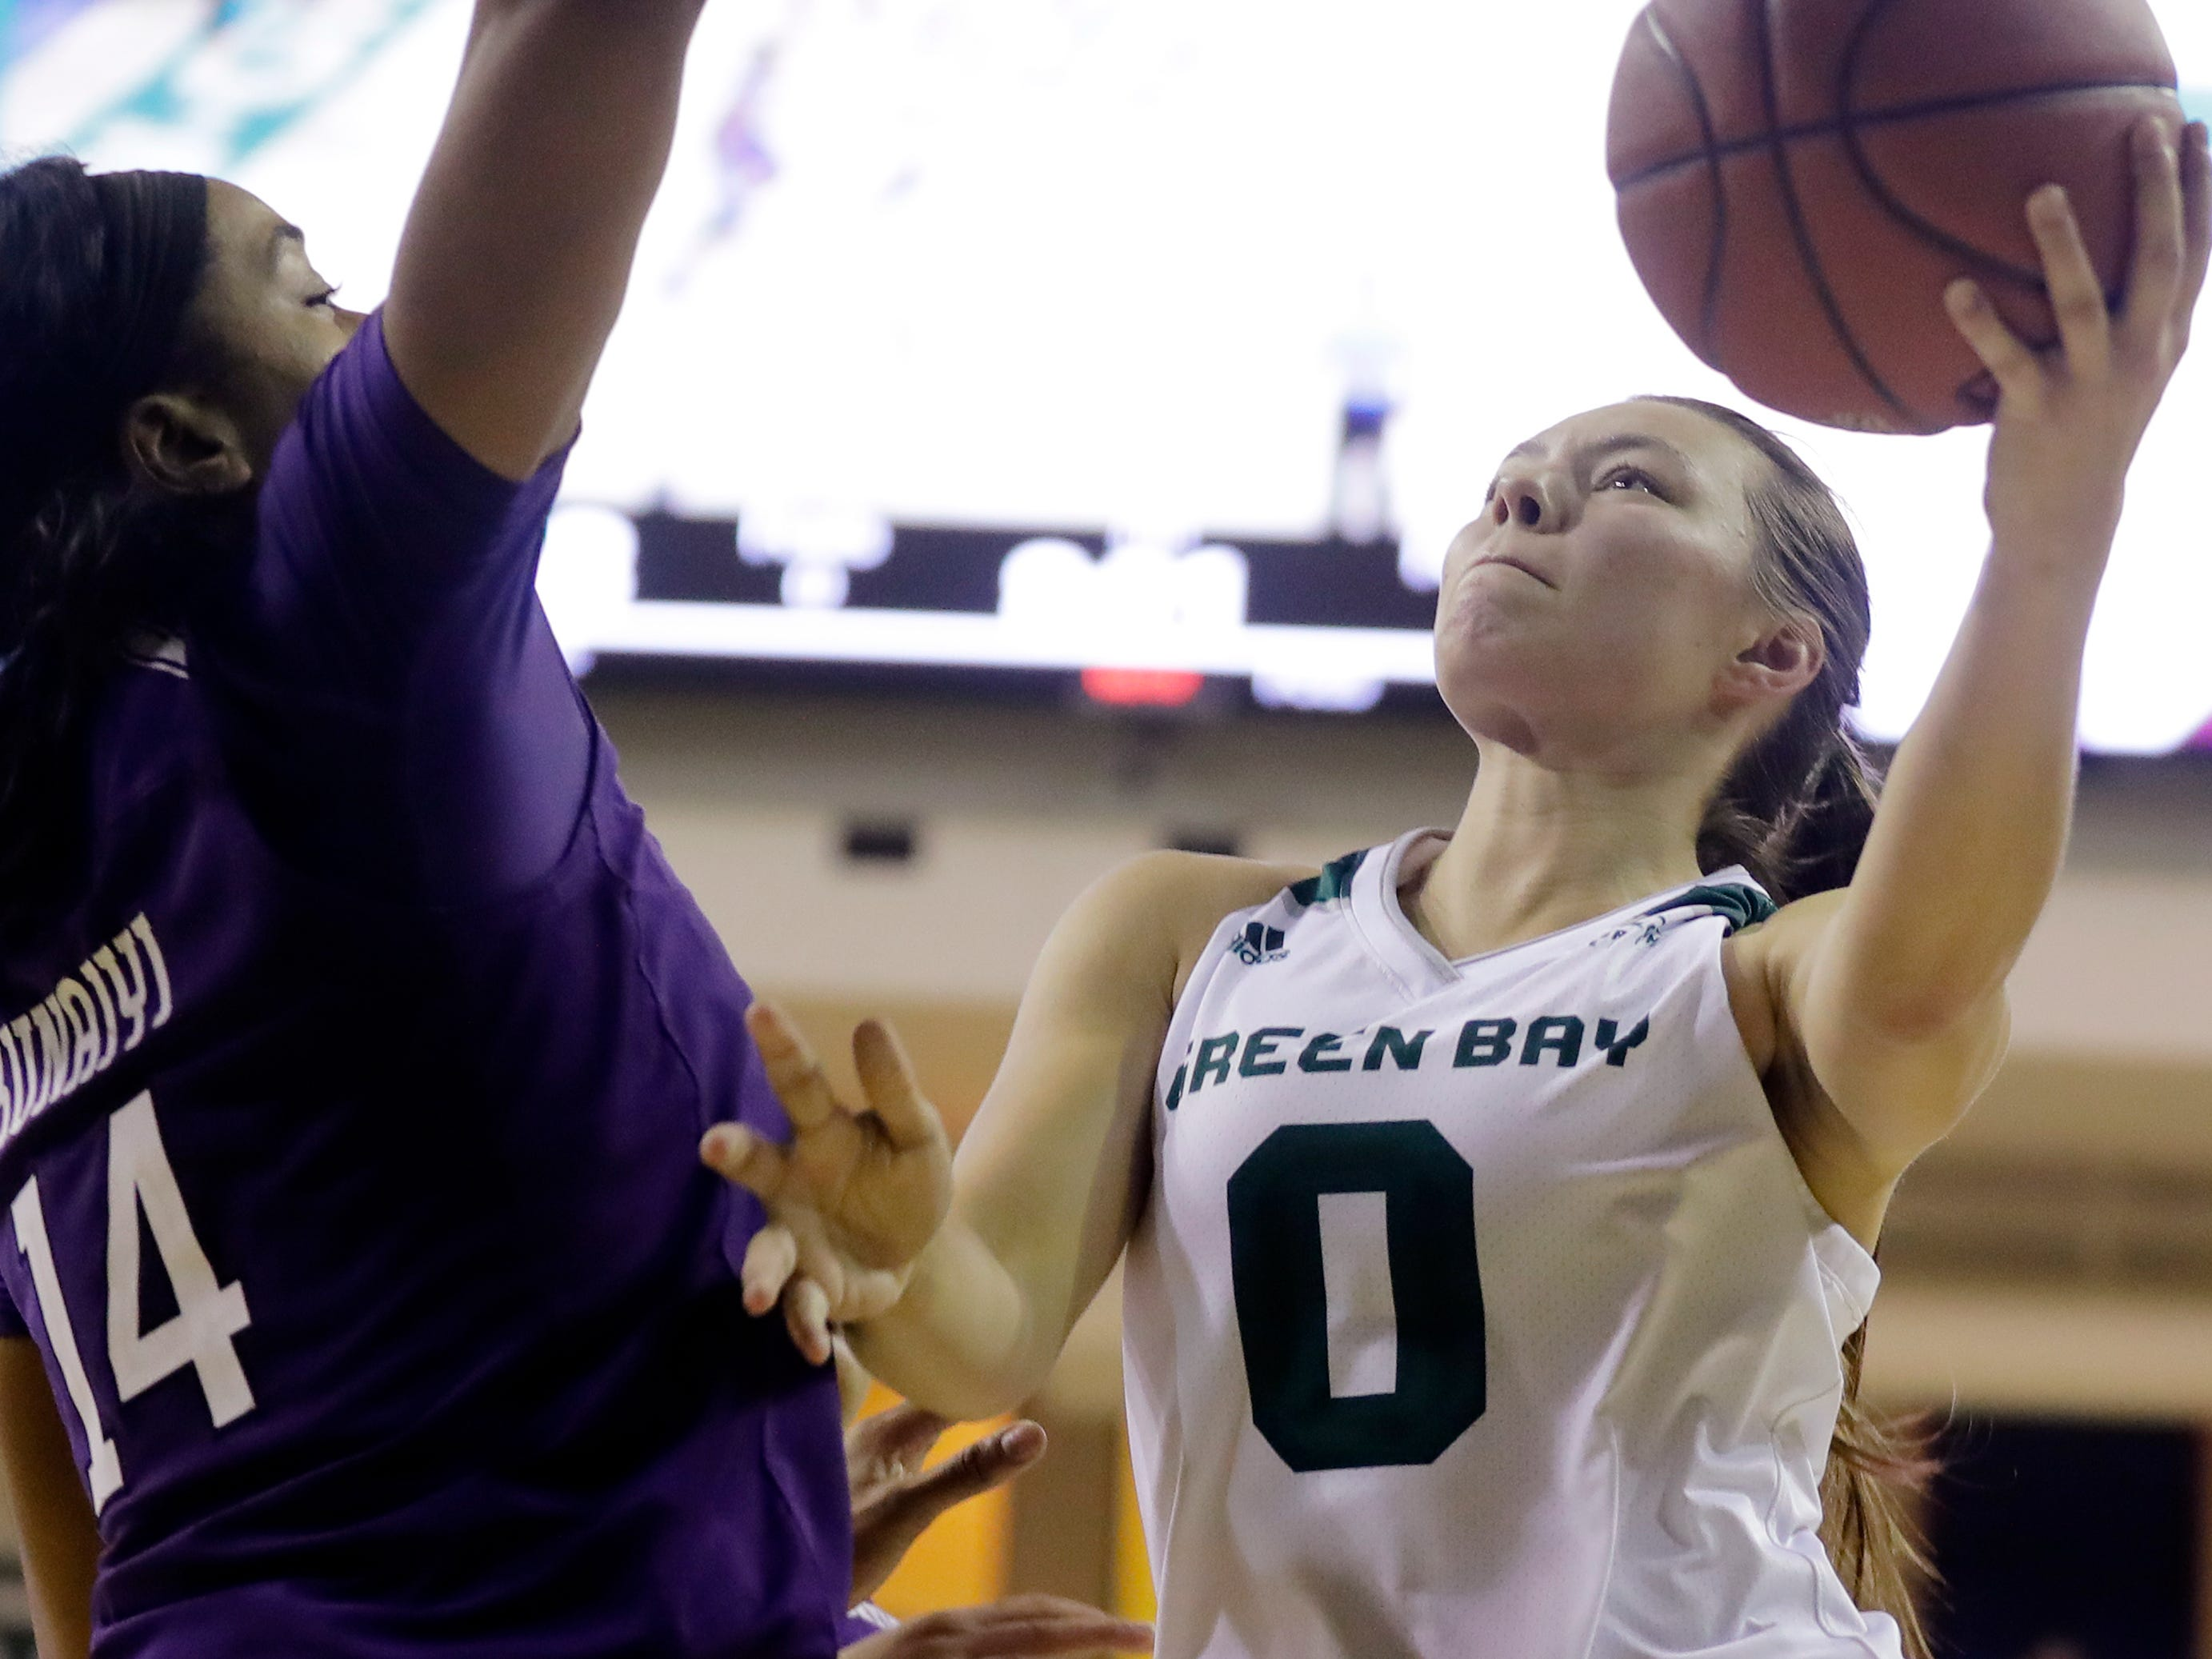 Green Bay Phoenix guard Hailey Oskey (0) drives to the basket against Northwestern Wildcats forward Pallas Kunaiyi-Akpanah (14) in a women's NCAA basketball game at the Kress Center on Tuesday, November 6, 2018 in Green Bay, Wis.